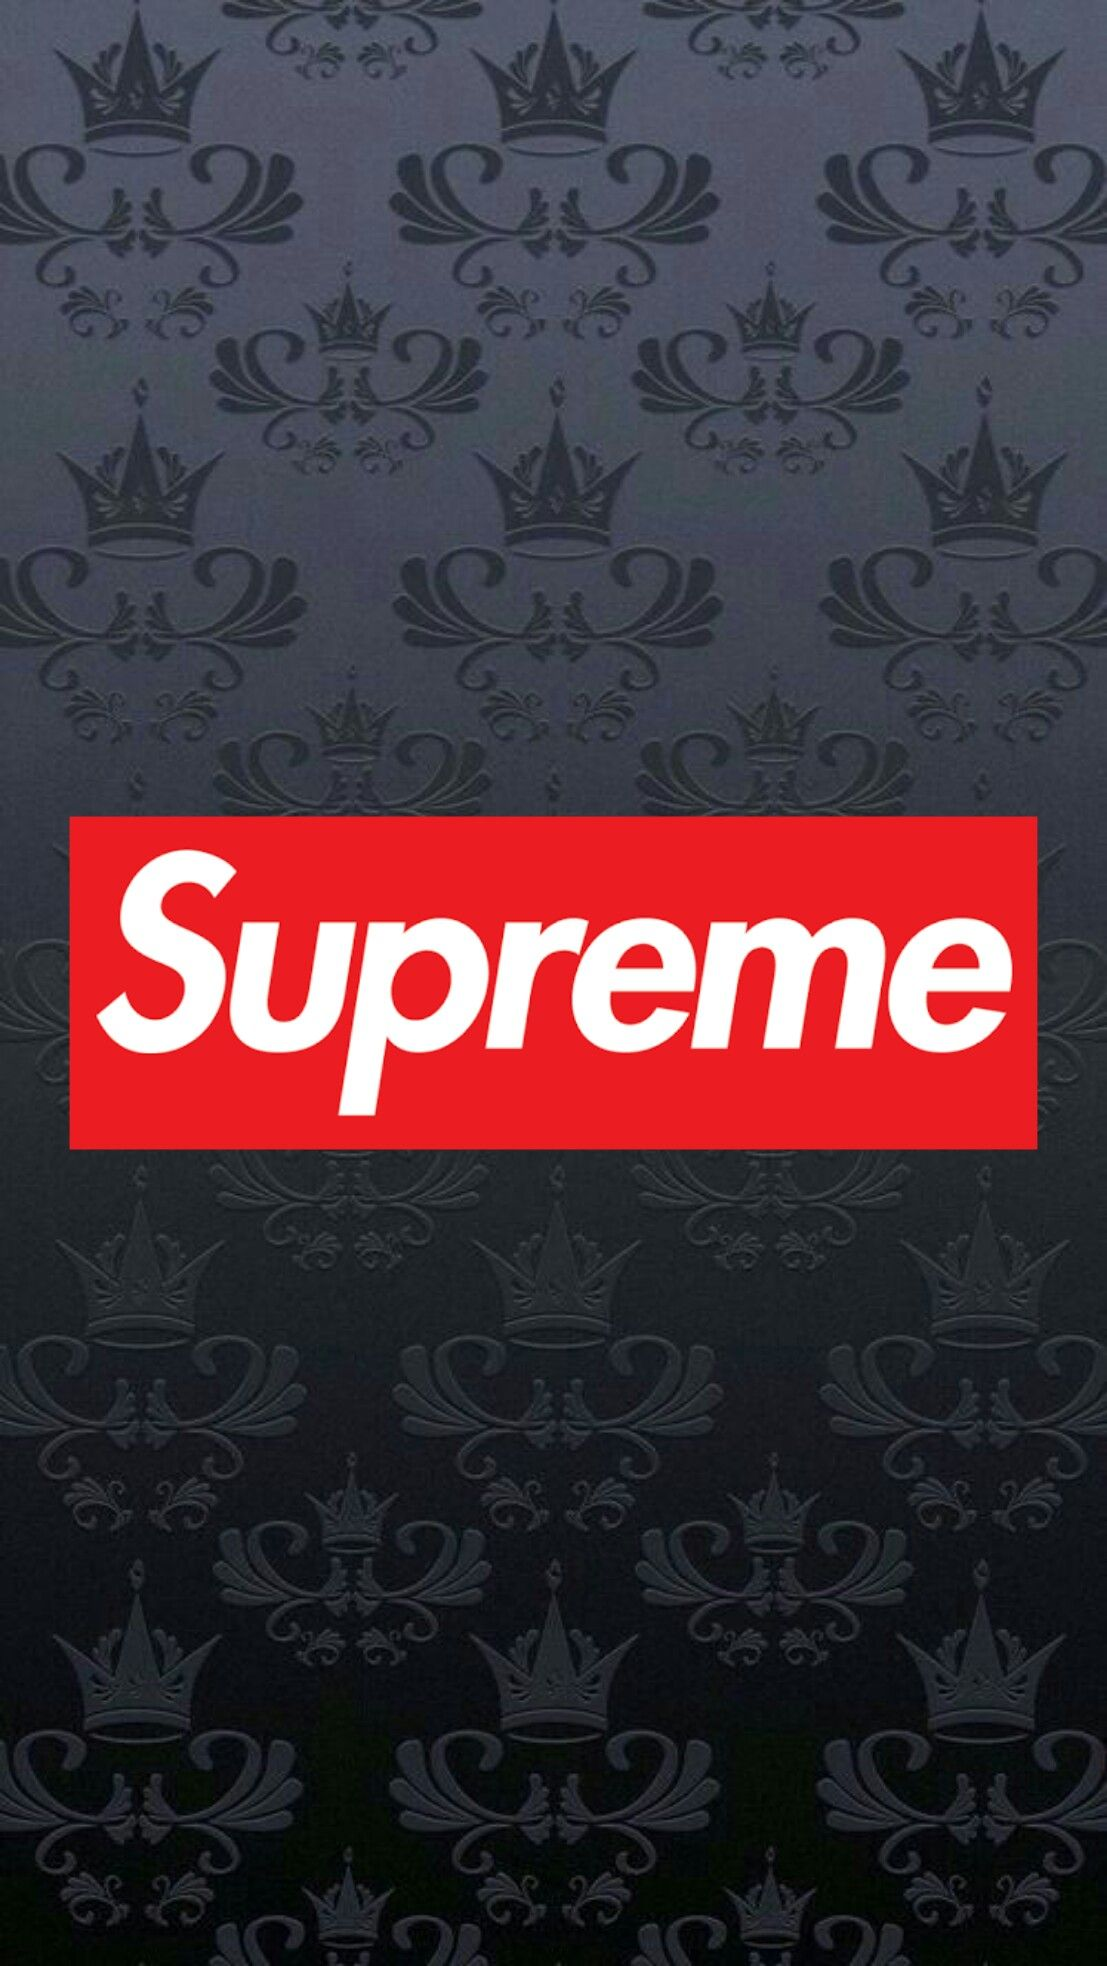 Cool Supreme Logo - Supreme HD Wallpapers - Wallpaper Cave